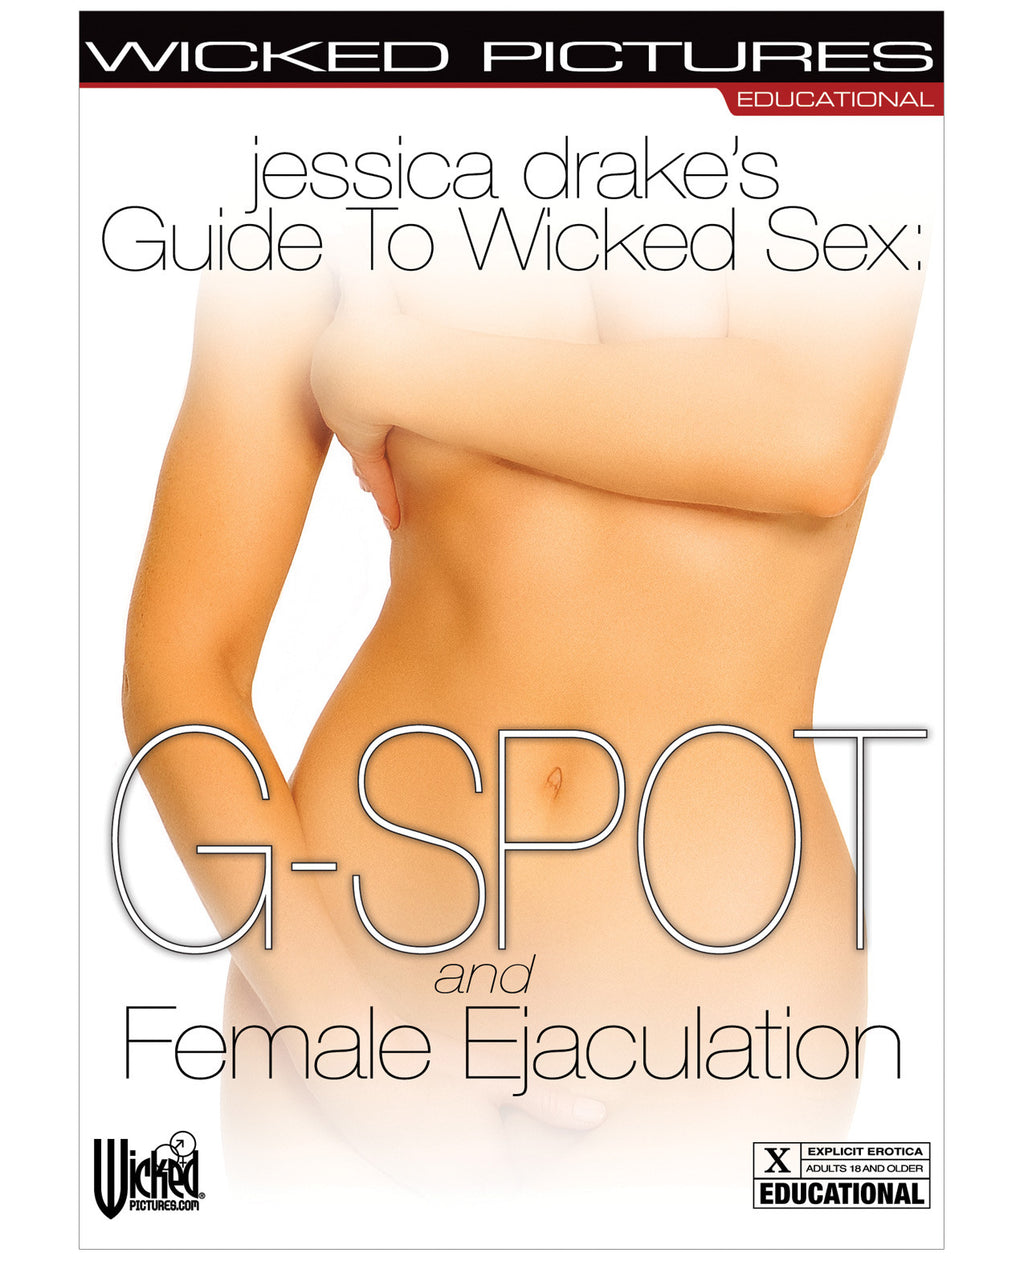 Jessica Drake's Guide to Wicked Sex - Female Ejaculation - Dvd And Video Instructional - The Fallen Angel